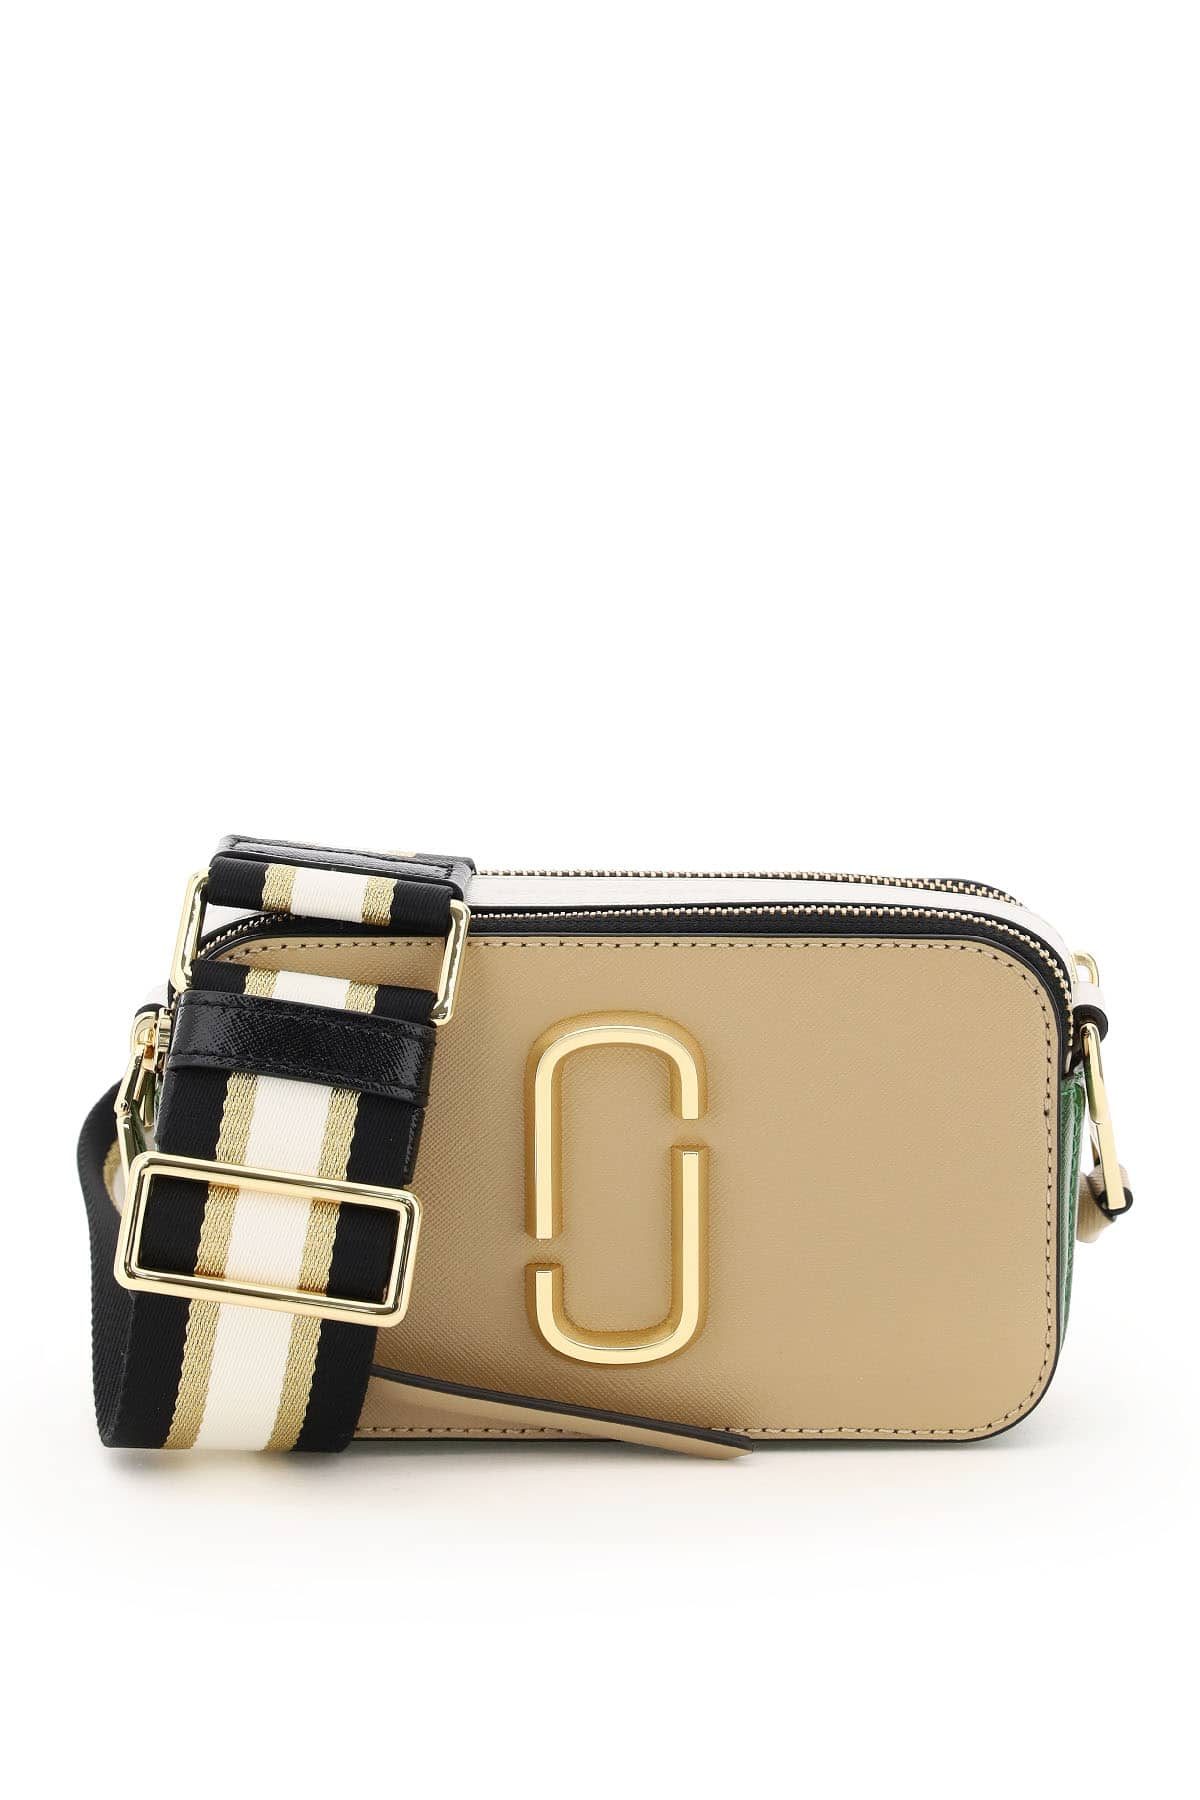 Marc Jacobs The Snapshot small camera bag crafted from two-tone saffiano leather with two independen